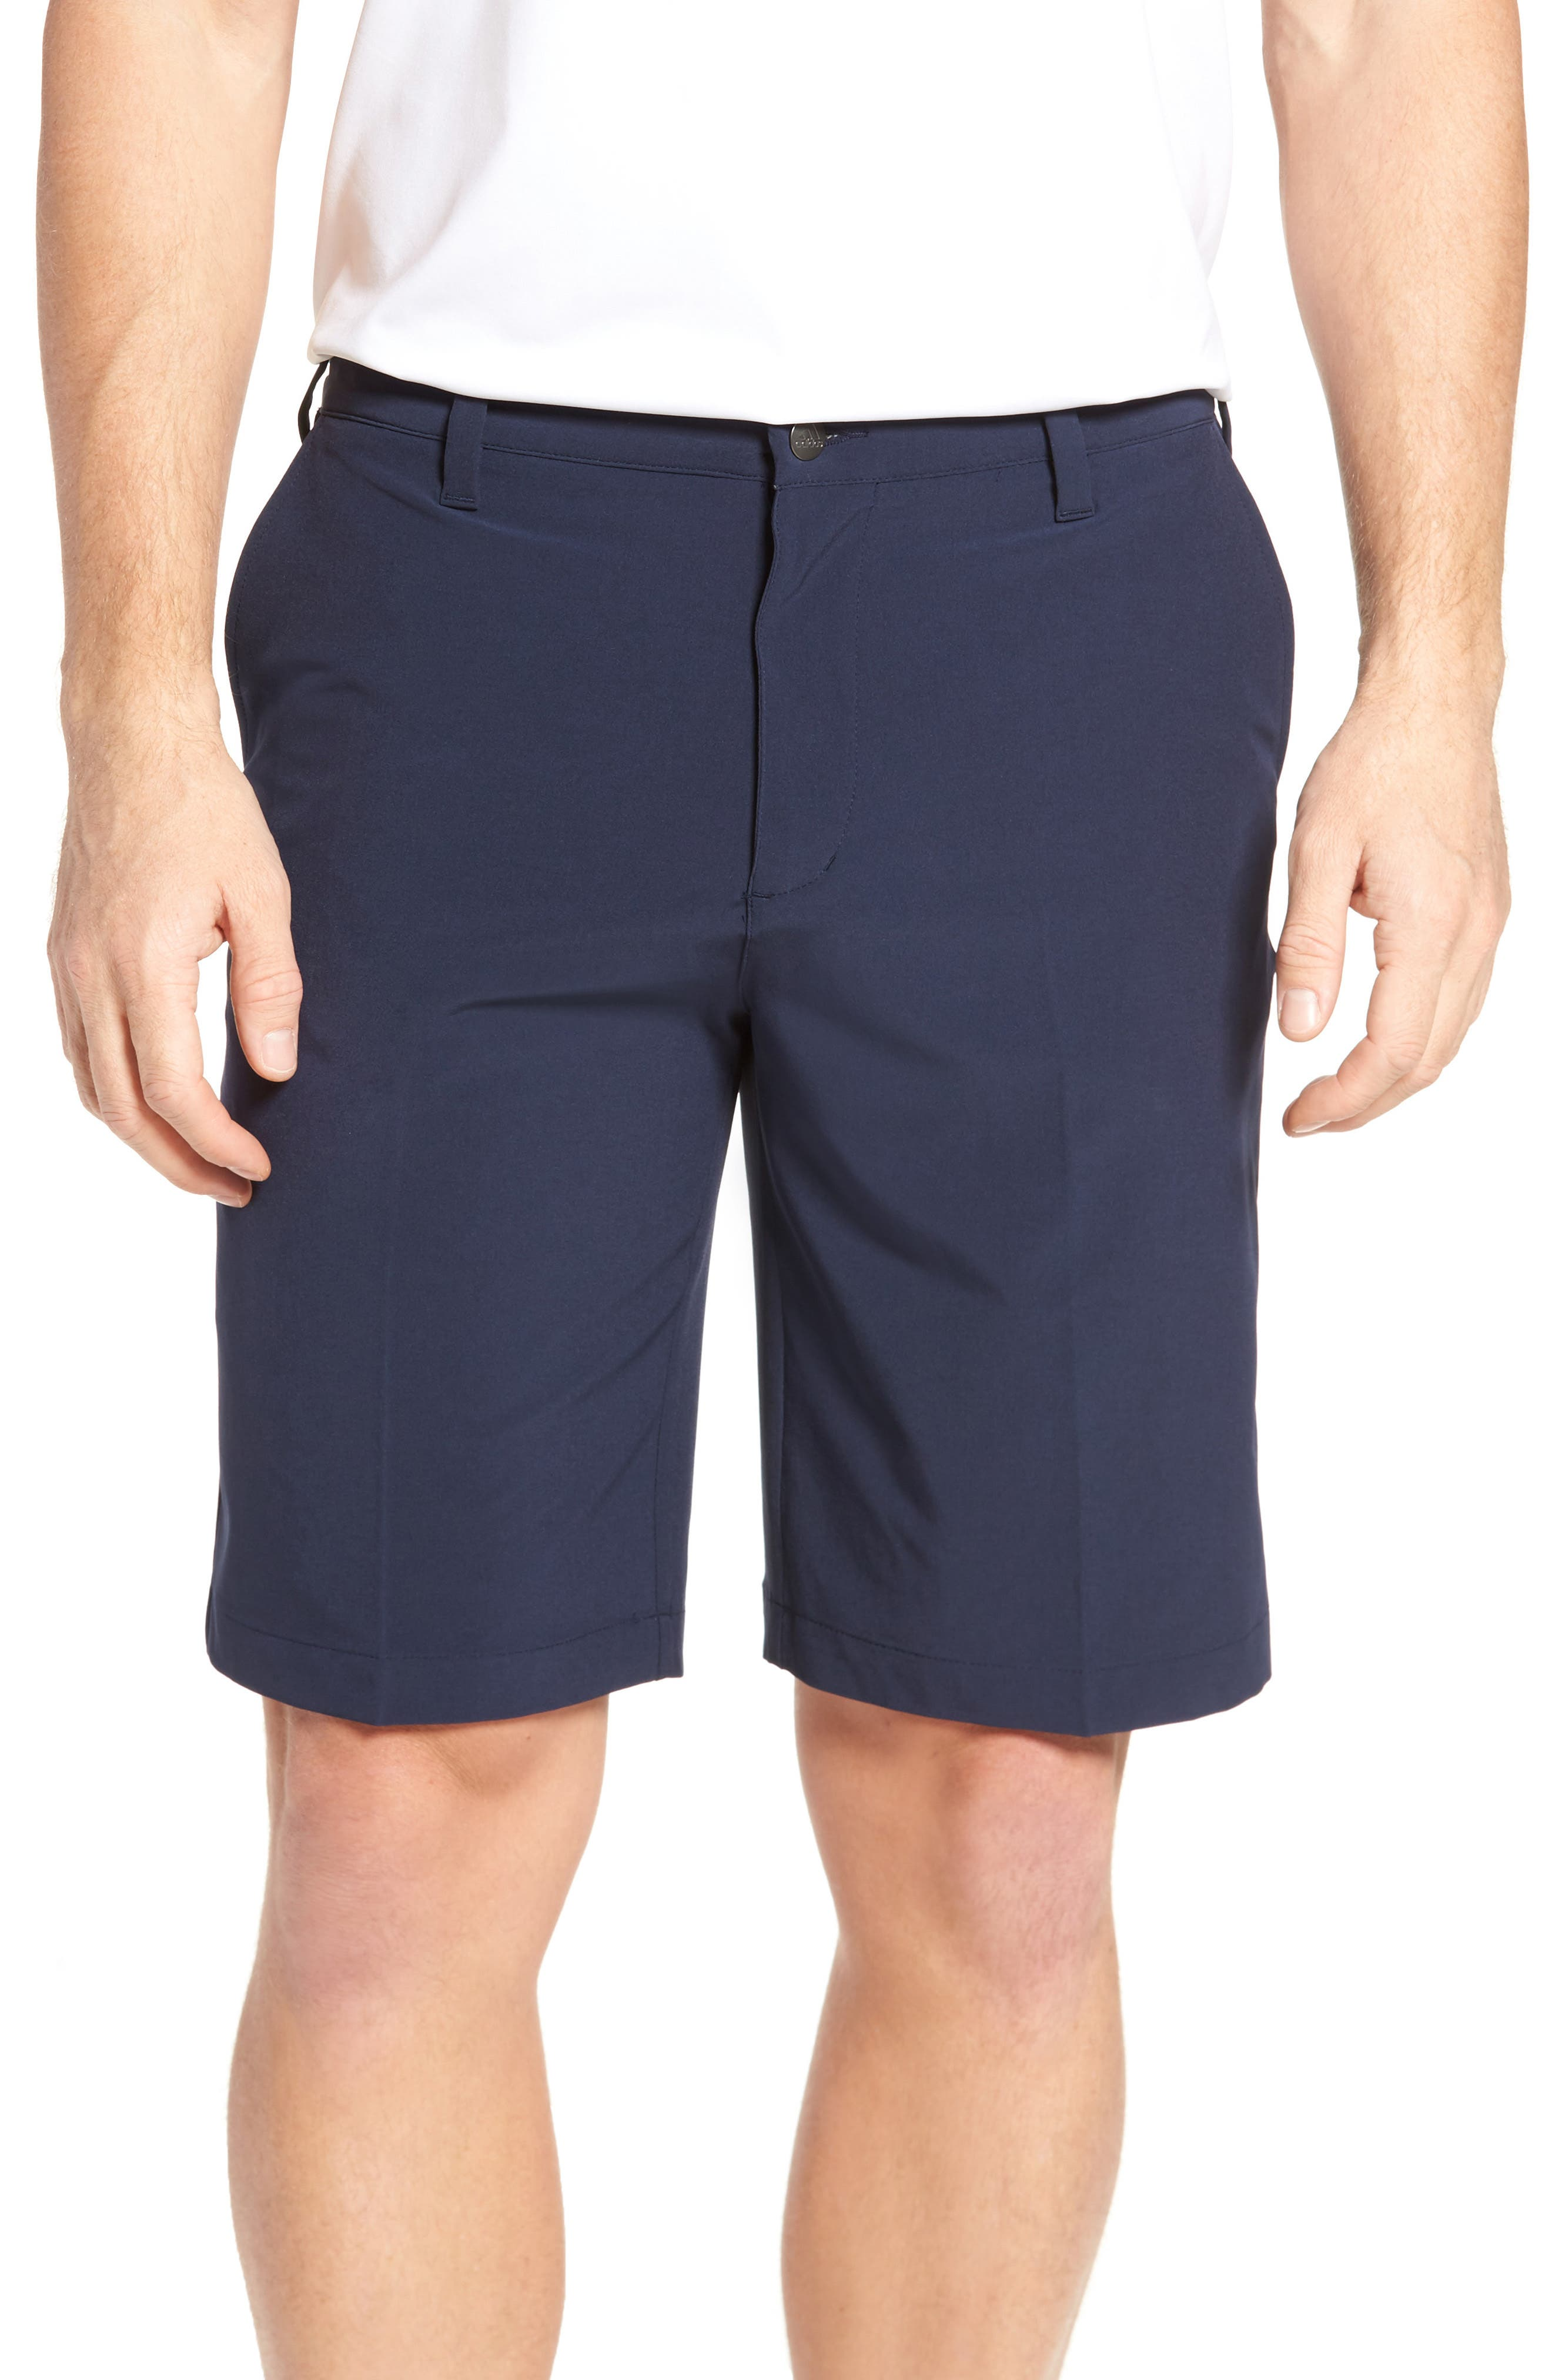 Alternate Image 1 Selected - adidas 'Ultimate' Golf Shorts